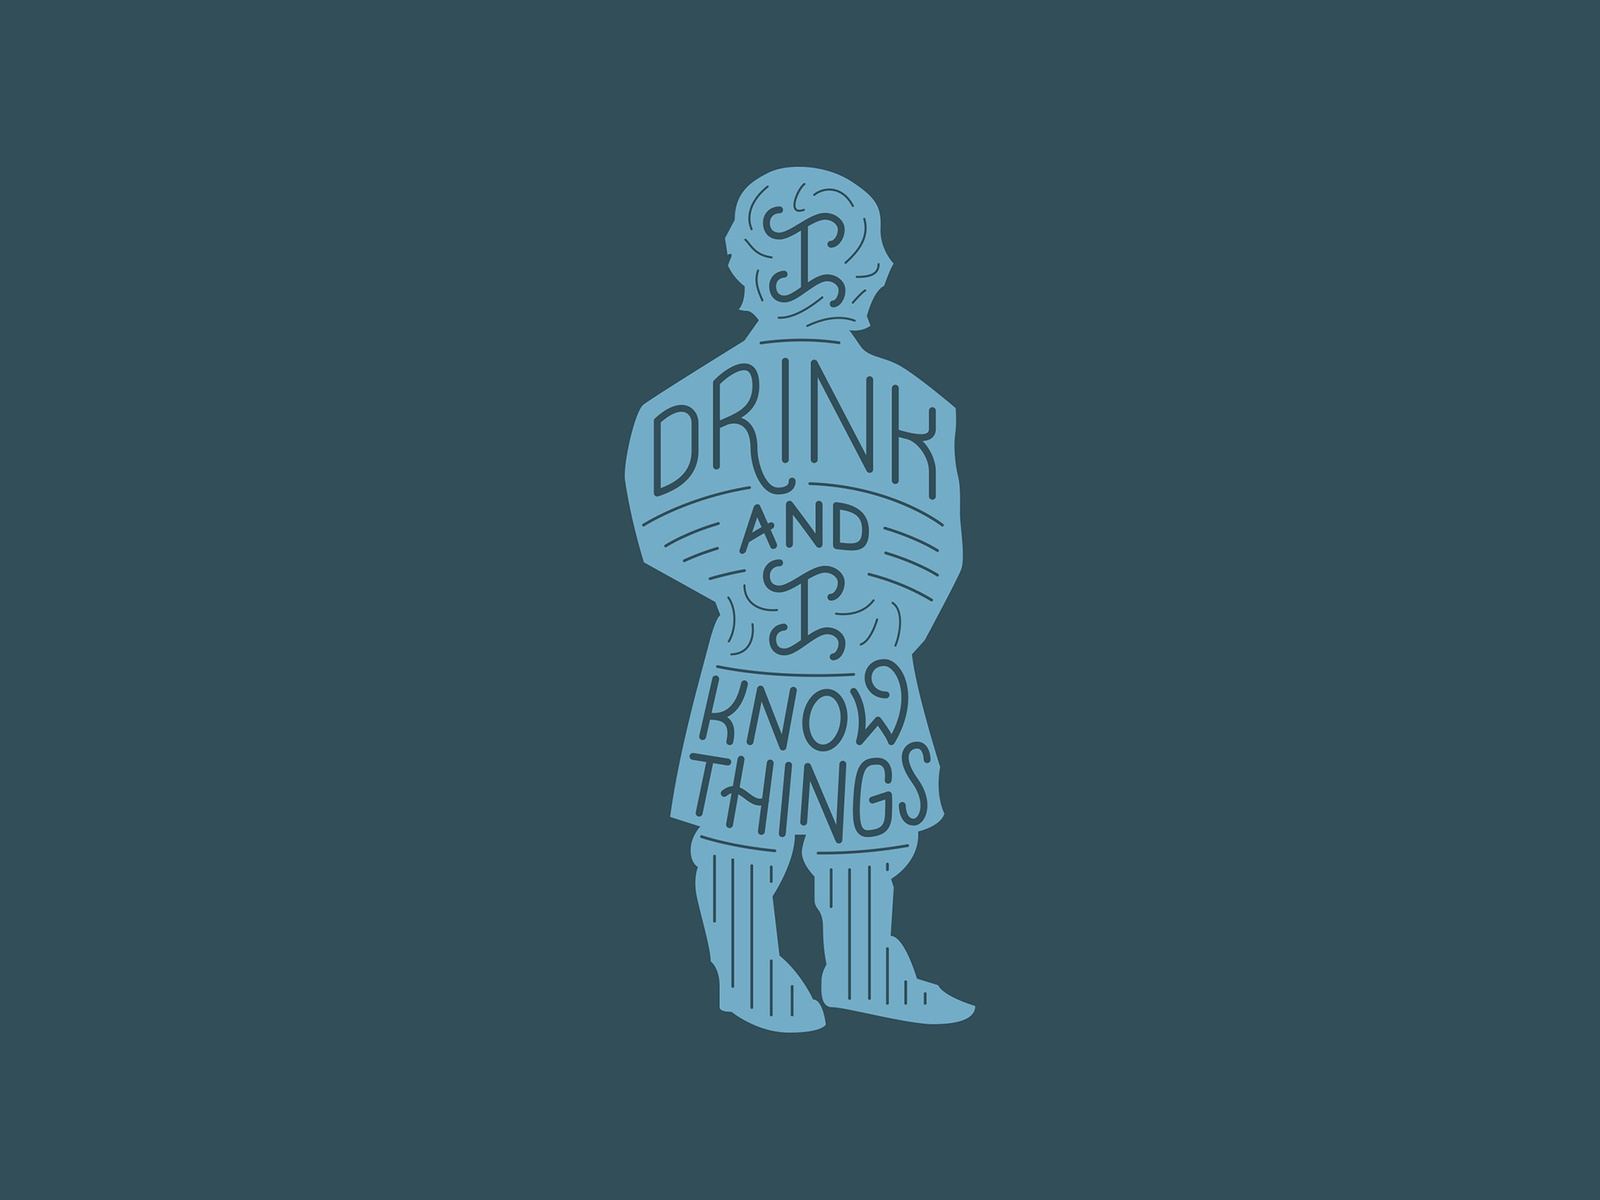 I Drink And I Know Things By Logan Bingaman On Dribbble